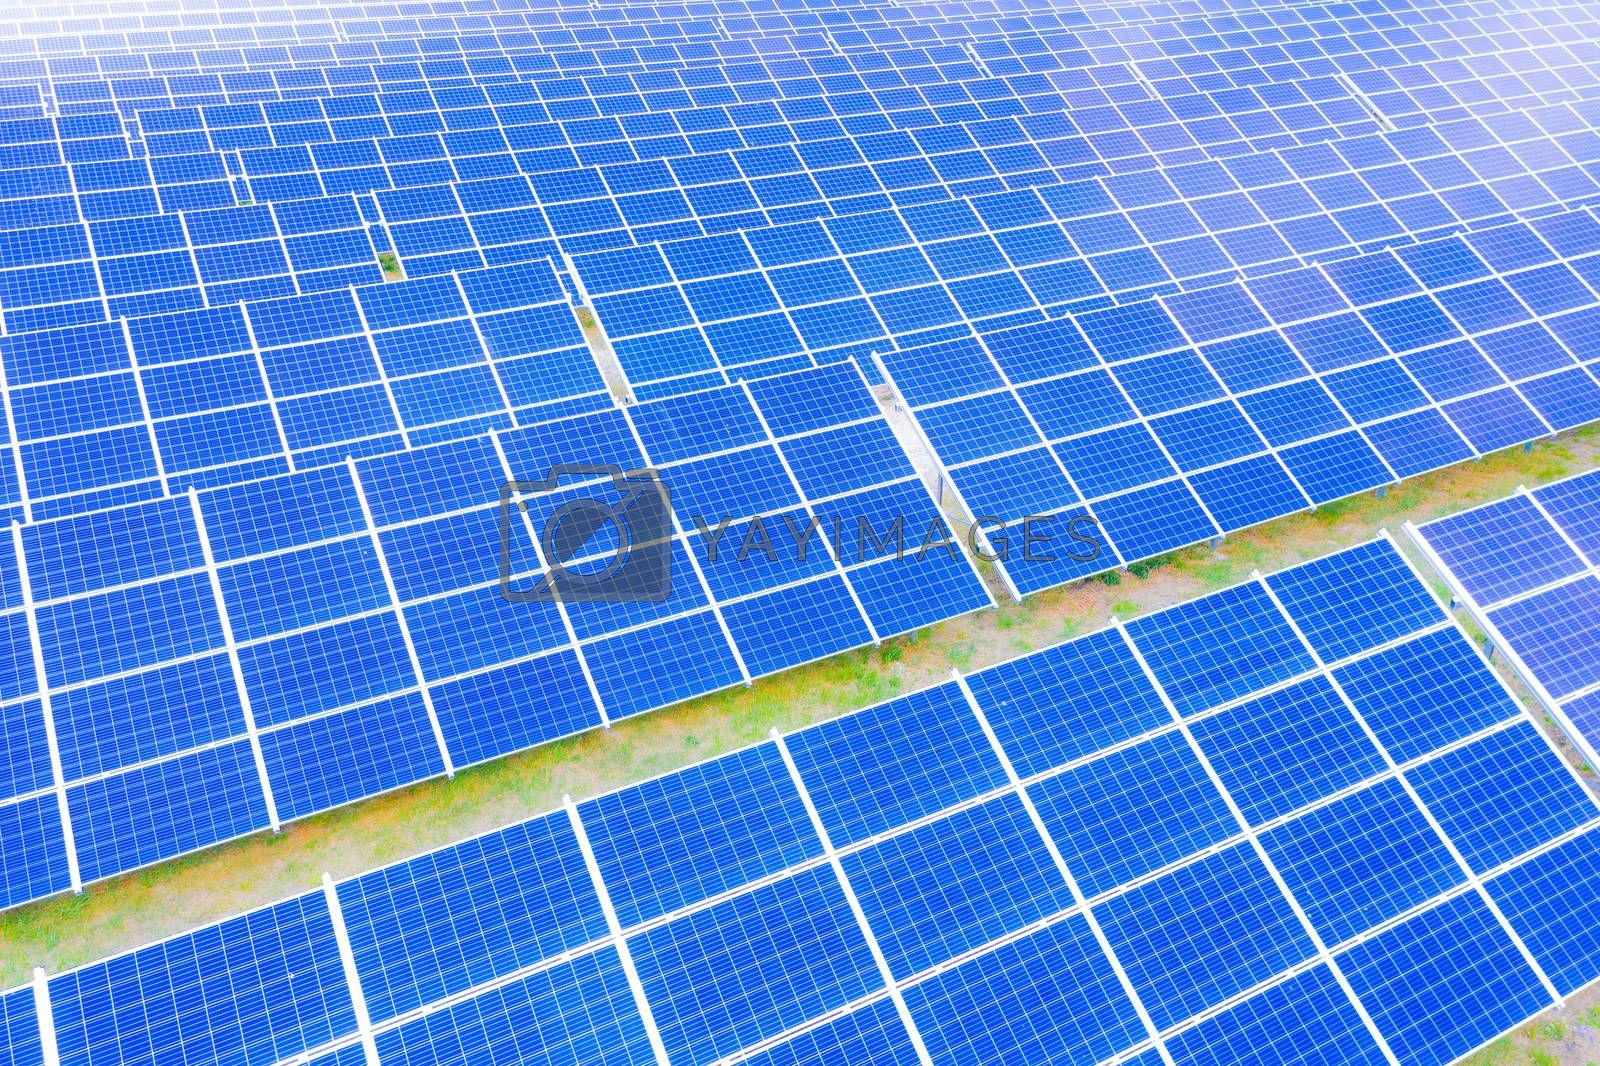 Renewable Energy and Sustainable Development / Park of Photovoltaic Solar Panels . Aerial view of Solar panels Photovoltaic systems industrial landscape